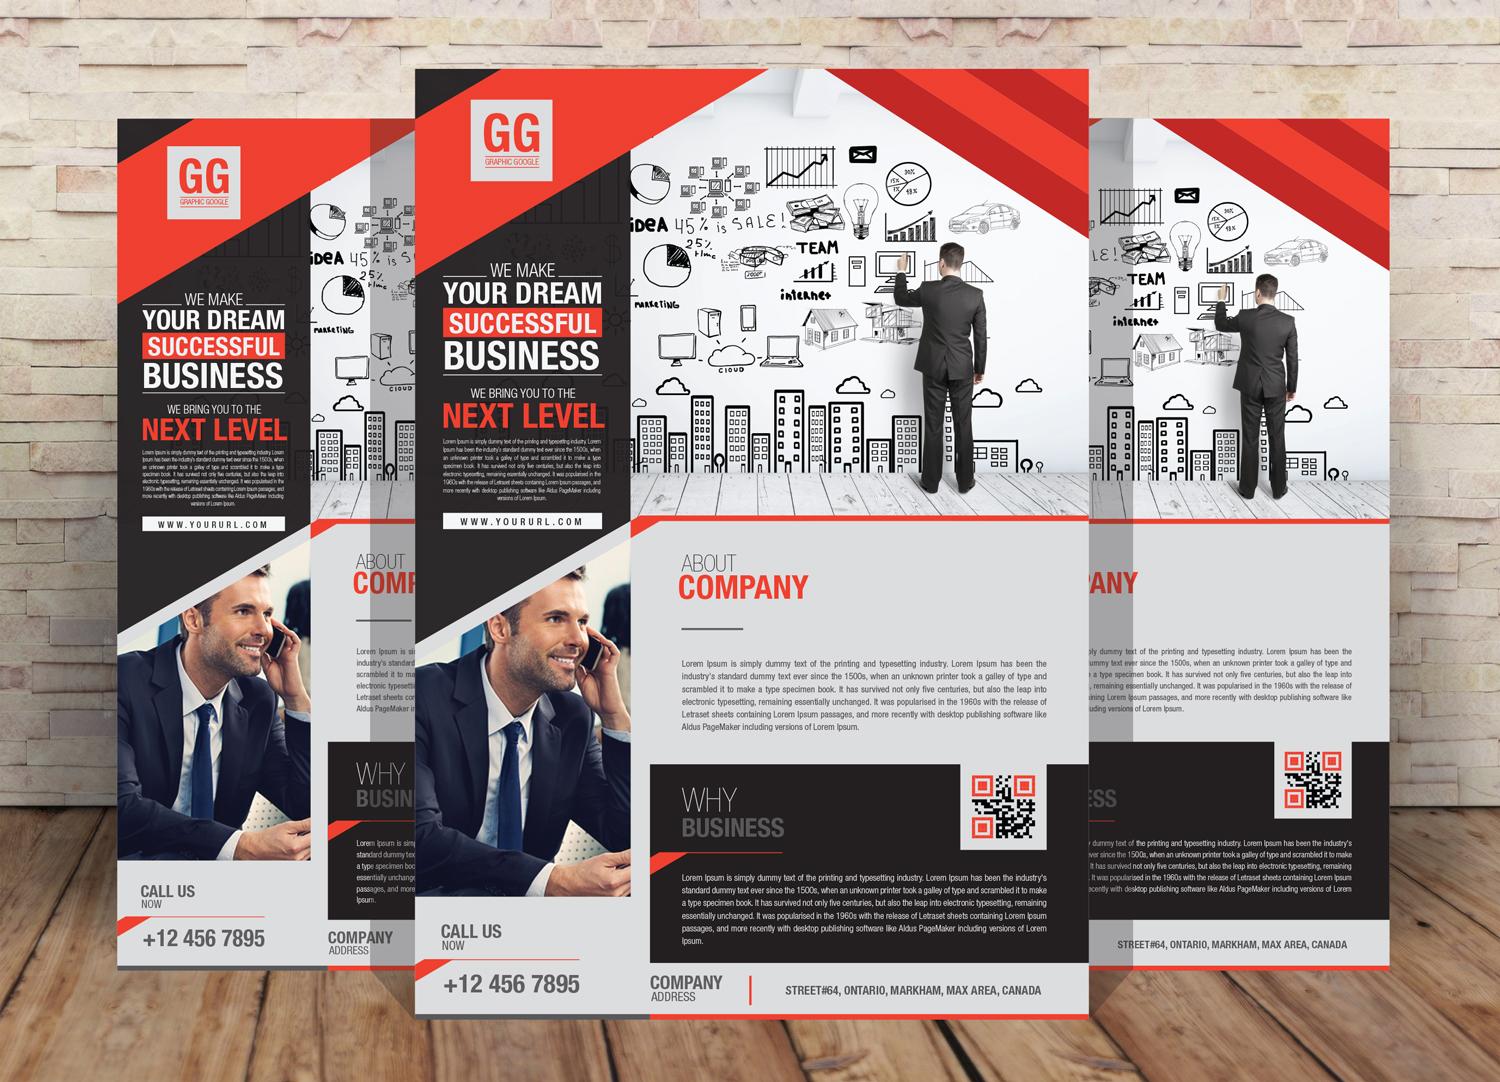 Free business flyer design template for your corporate business in 2017 free business flyer design template accmission